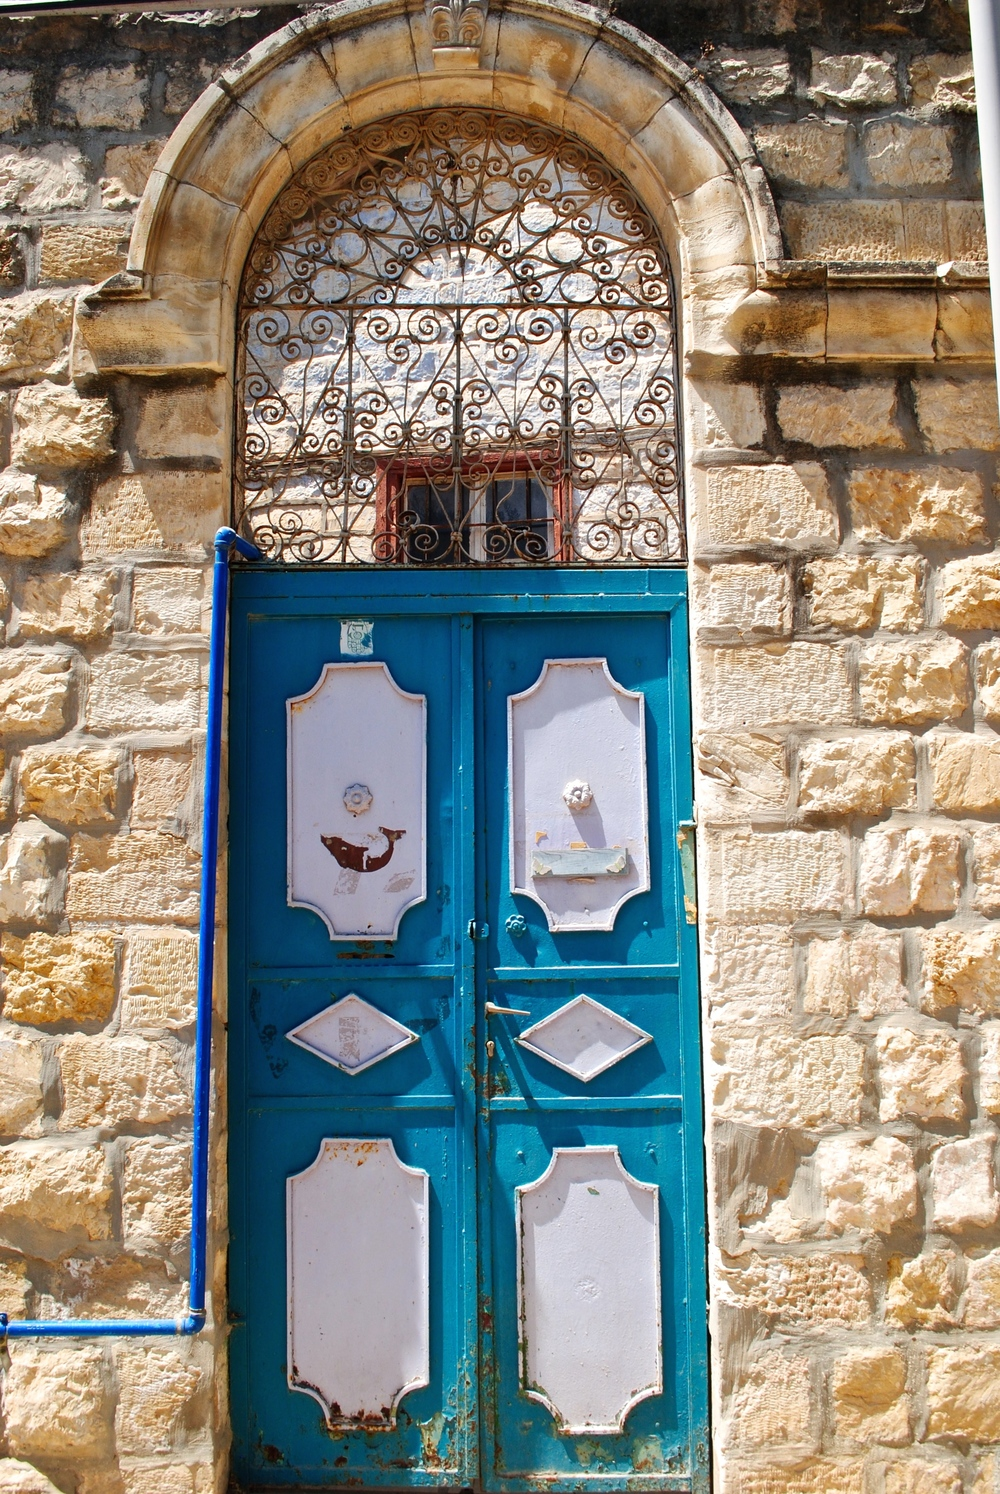 Turquoise Tsfat Door , Tsaft Israel, August 2015